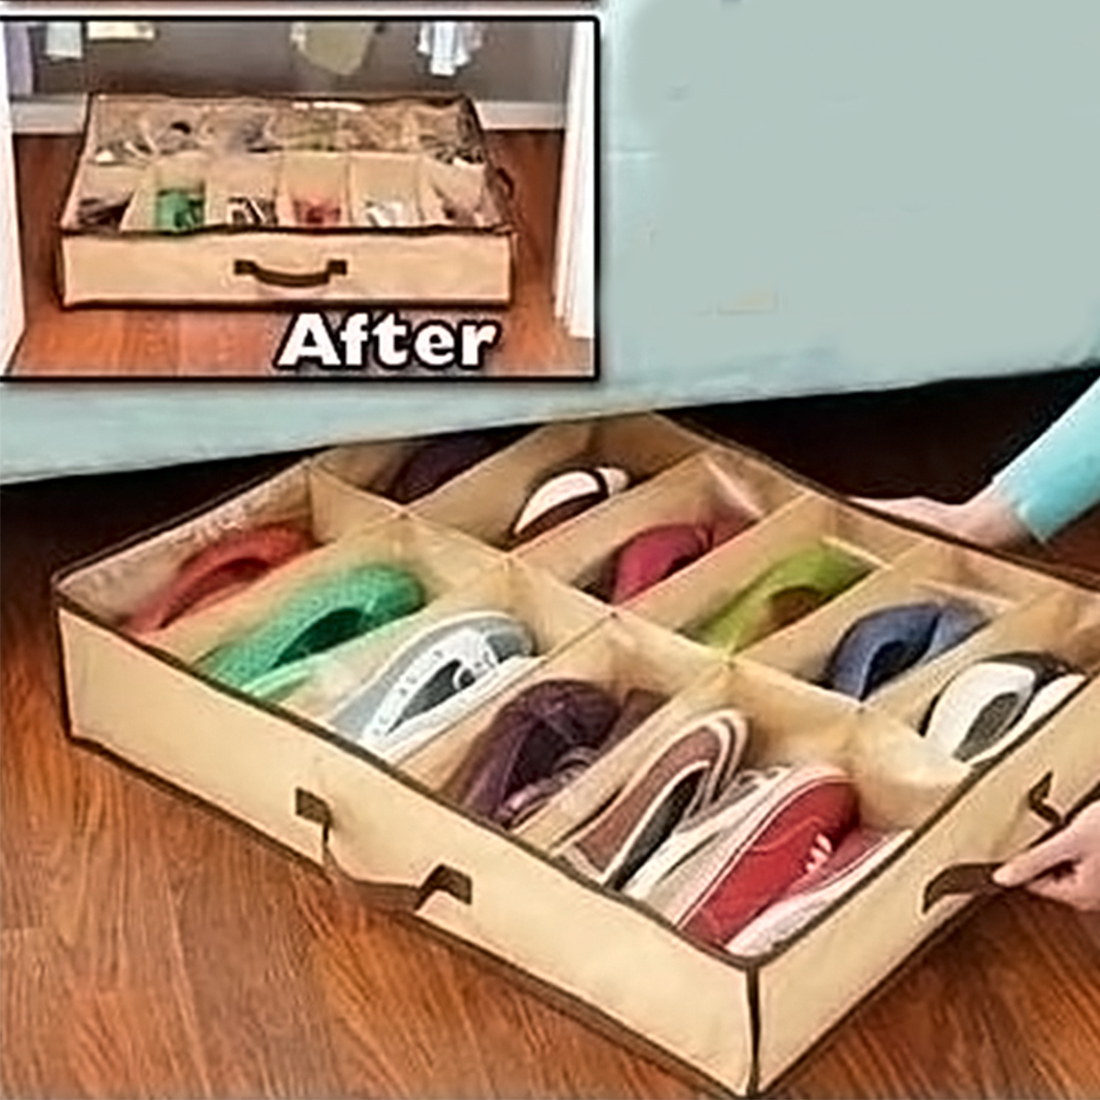 Nonwoven Transparent Creative Househ Shoe Cabinet Dust-proof 12 Cases Shoes Storage Organizer Holder Bag Box Under Bed Closet